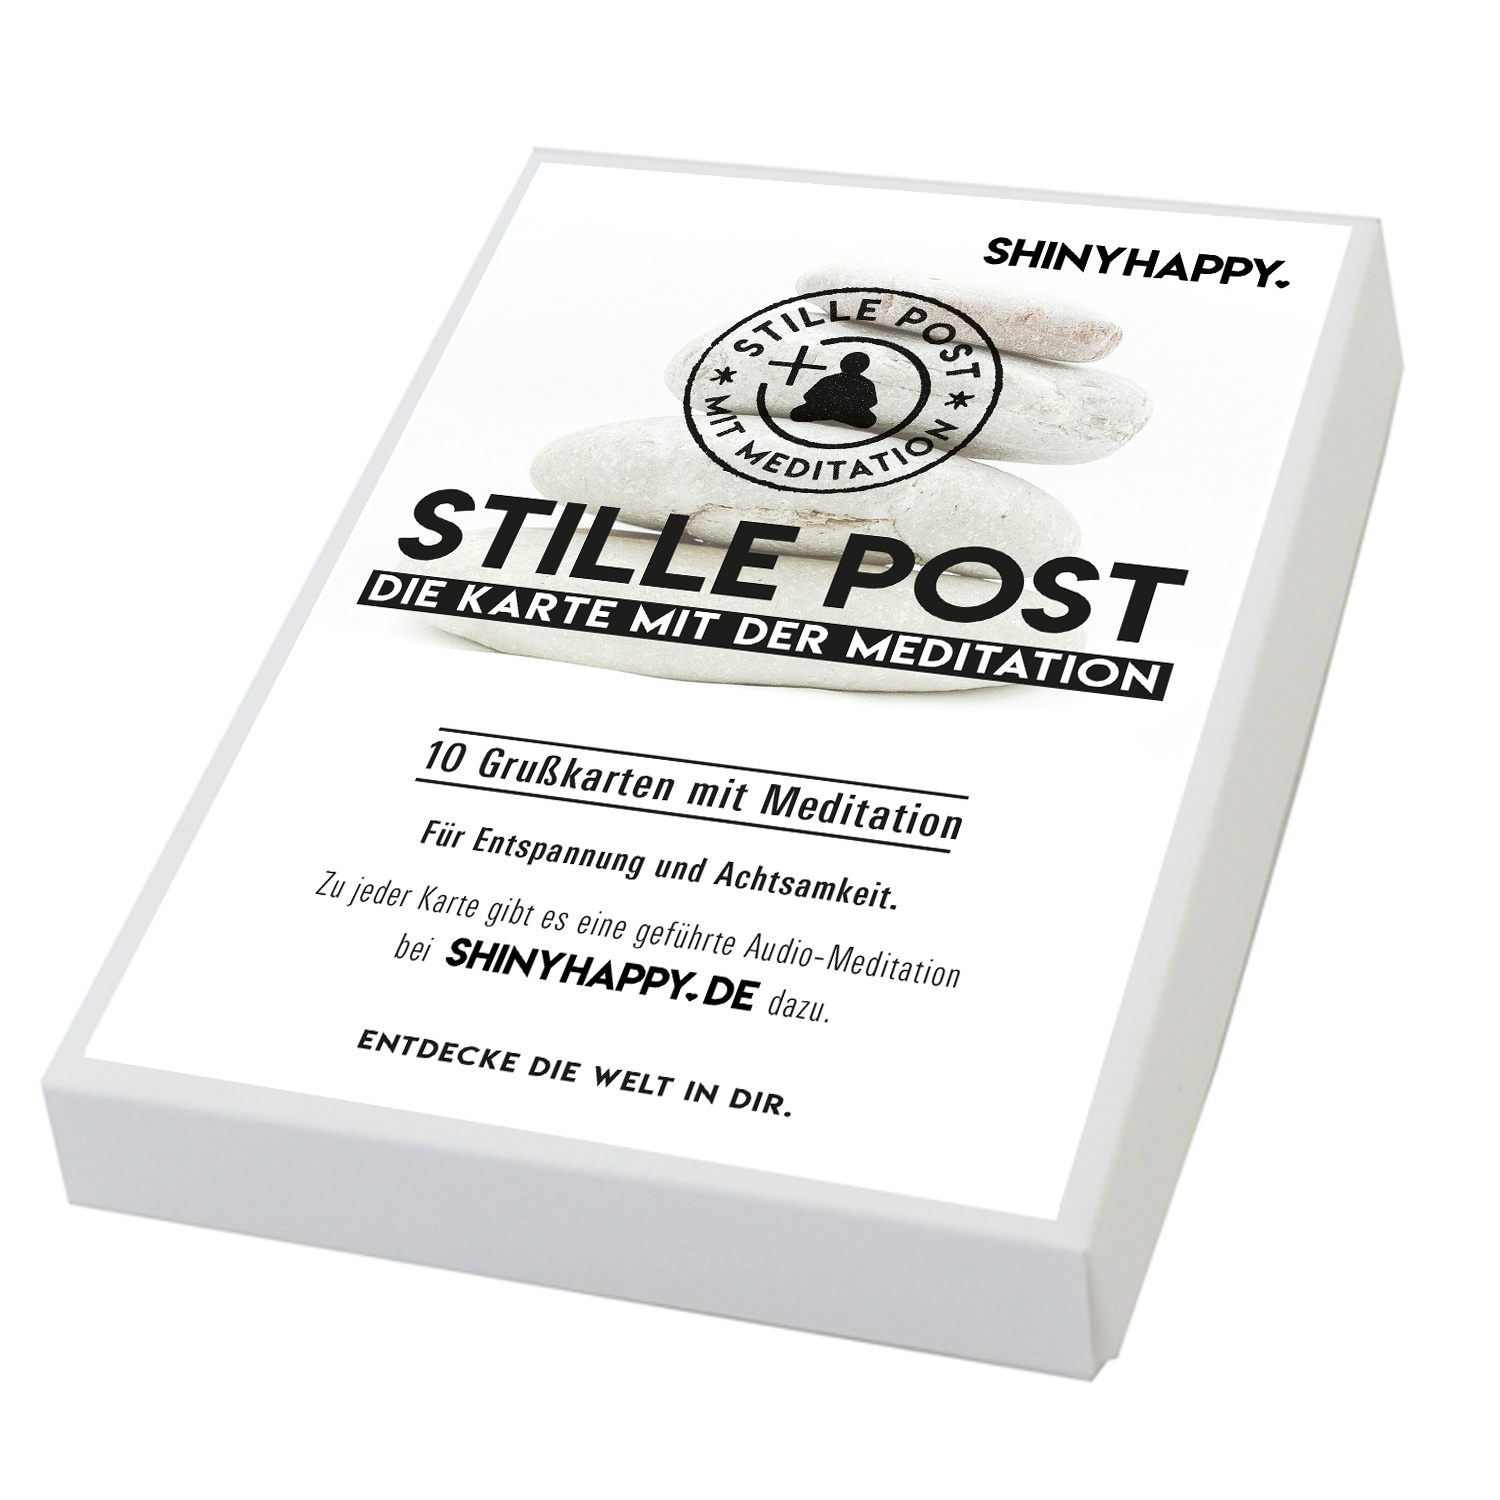 stille_post_box_01